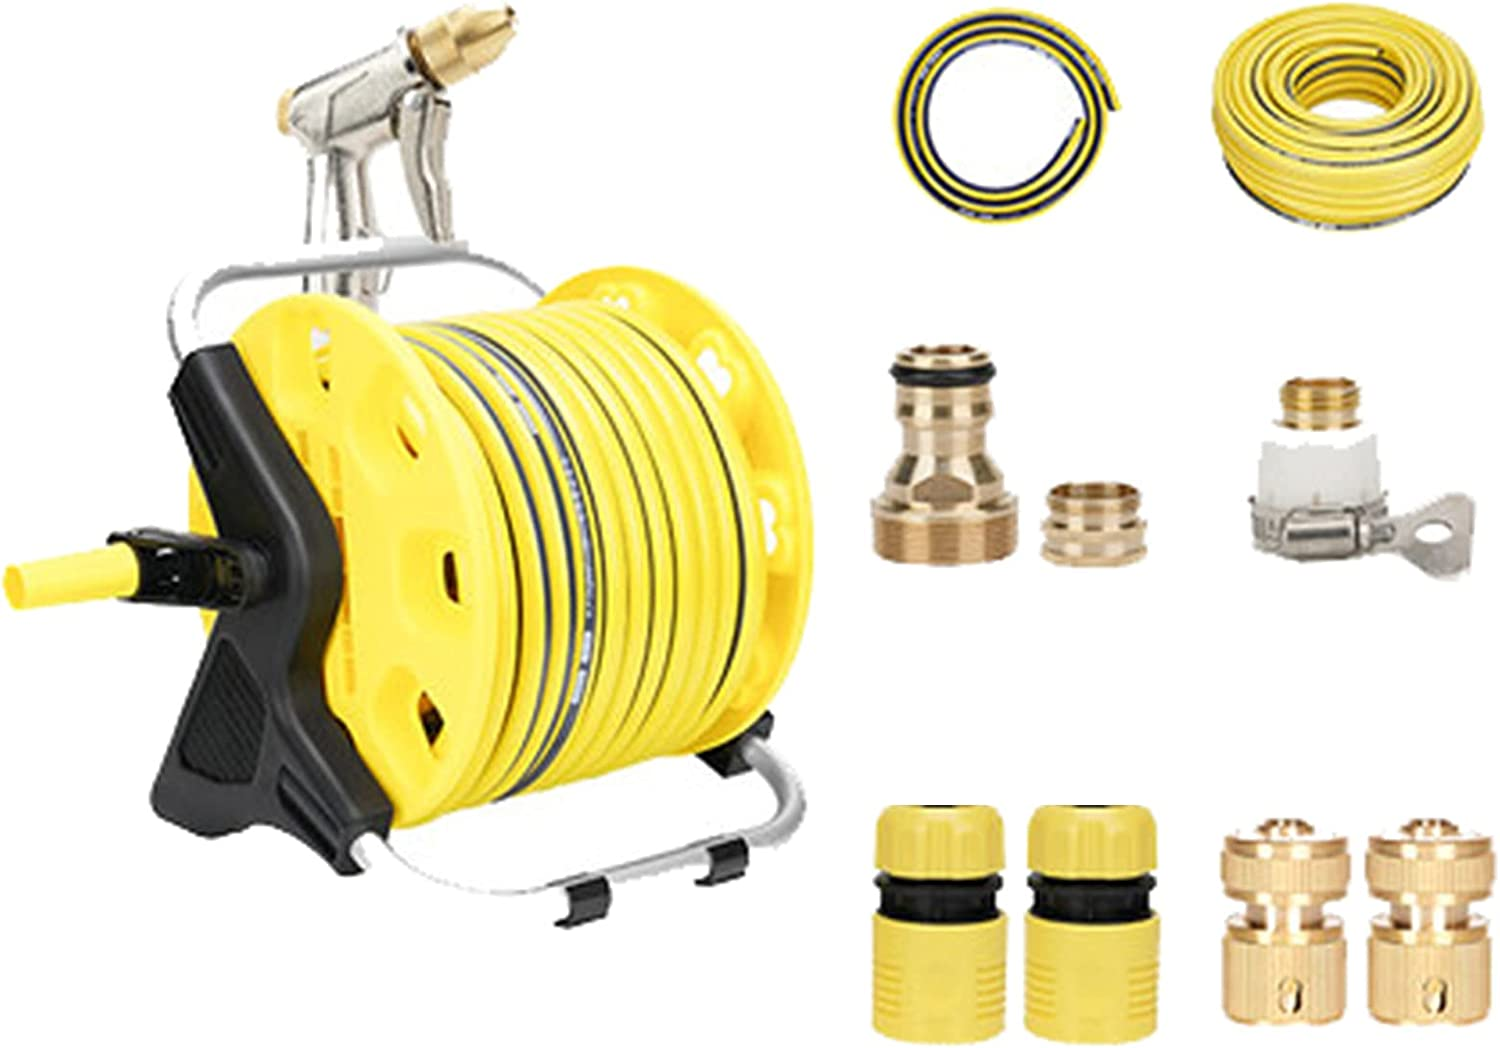 tools Portable Installation-Free Reel Ho kit Retractable New products world's highest quality popular Garden Sales results No. 1